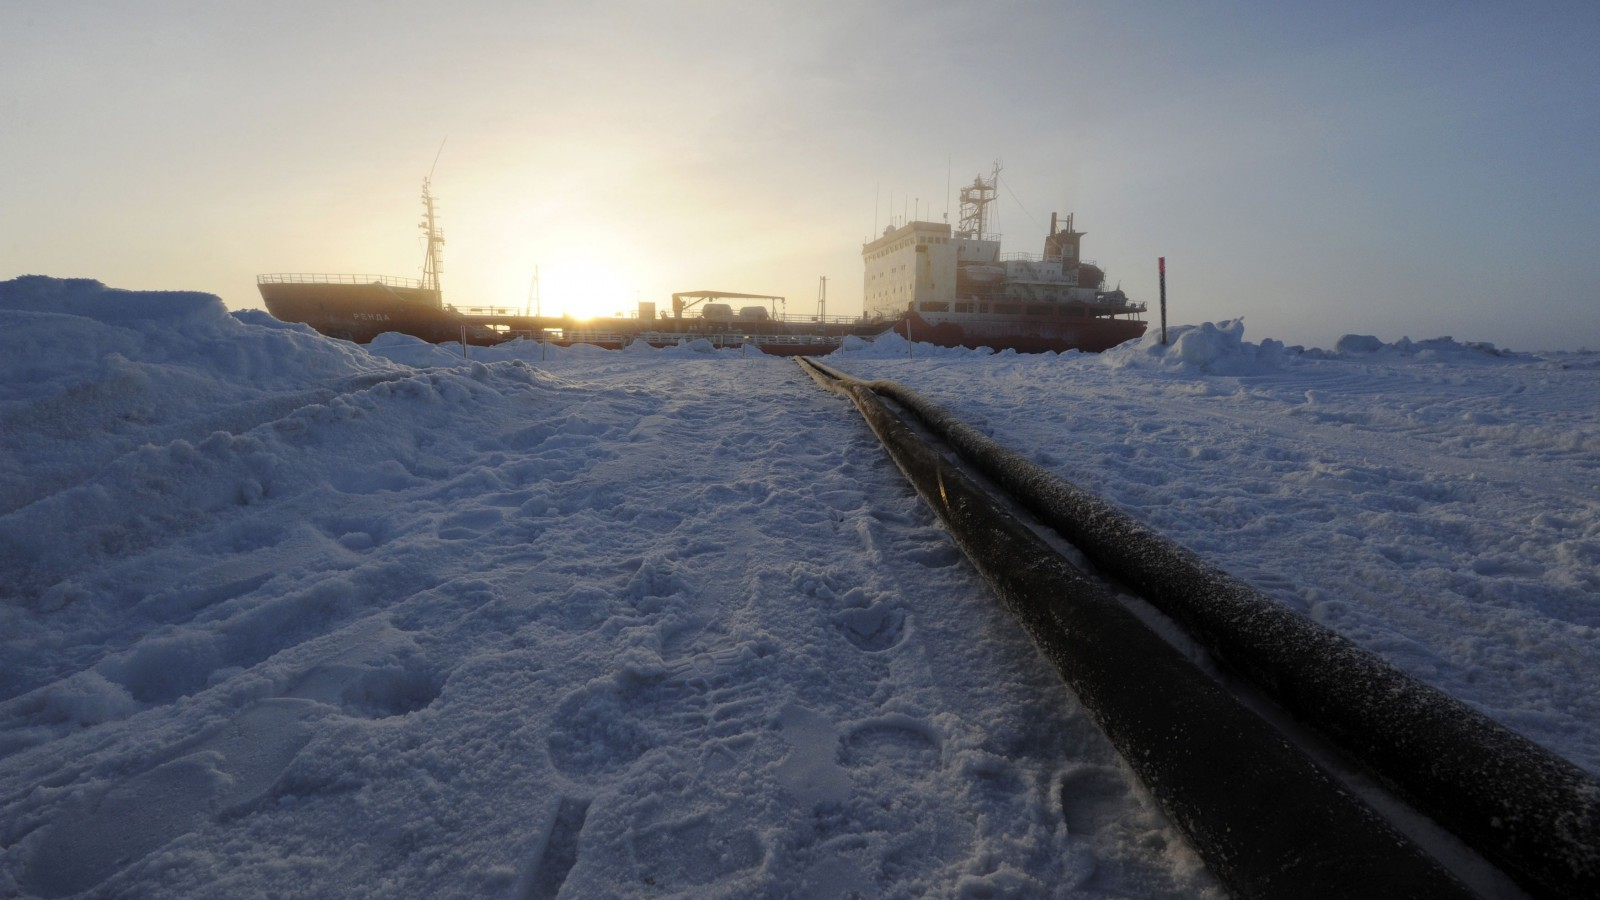 Two hoses used to transfer fuel from the Russian Russian-flagged tanker Renda are seen in Nome, Alaska, in this January 16, 2012 handout picture. Renda, the Russian tanker escorted by the U.S. Coast Guard cutter Healy, reached the frozen Alaskan port of Nome with emergency fuel supplies on January 13 after a 10-day voyage through ice-choked seas, the Russian company that owns the vessel said. David Mosley, an Anchorage-based spokesman for the U.S. Coast Guard, said the Renda would remain at least half a mile from shore, due to the shallow depth of Nome's harbor. Fuel will be delivered to Nome by hose, he said. REUTERS/U.S.  Coast Guard/Petty Officer 3rd Class Grant DeVuyst/Handout (UNITED STATES - Tags: MARITIME TRANSPORT ENVIRONMENT ENERGY) FOR EDITORIAL USE ONLY. NOT FOR SALE FOR MARKETING OR ADVERTISING CAMPAIGNS - RTR2WF51